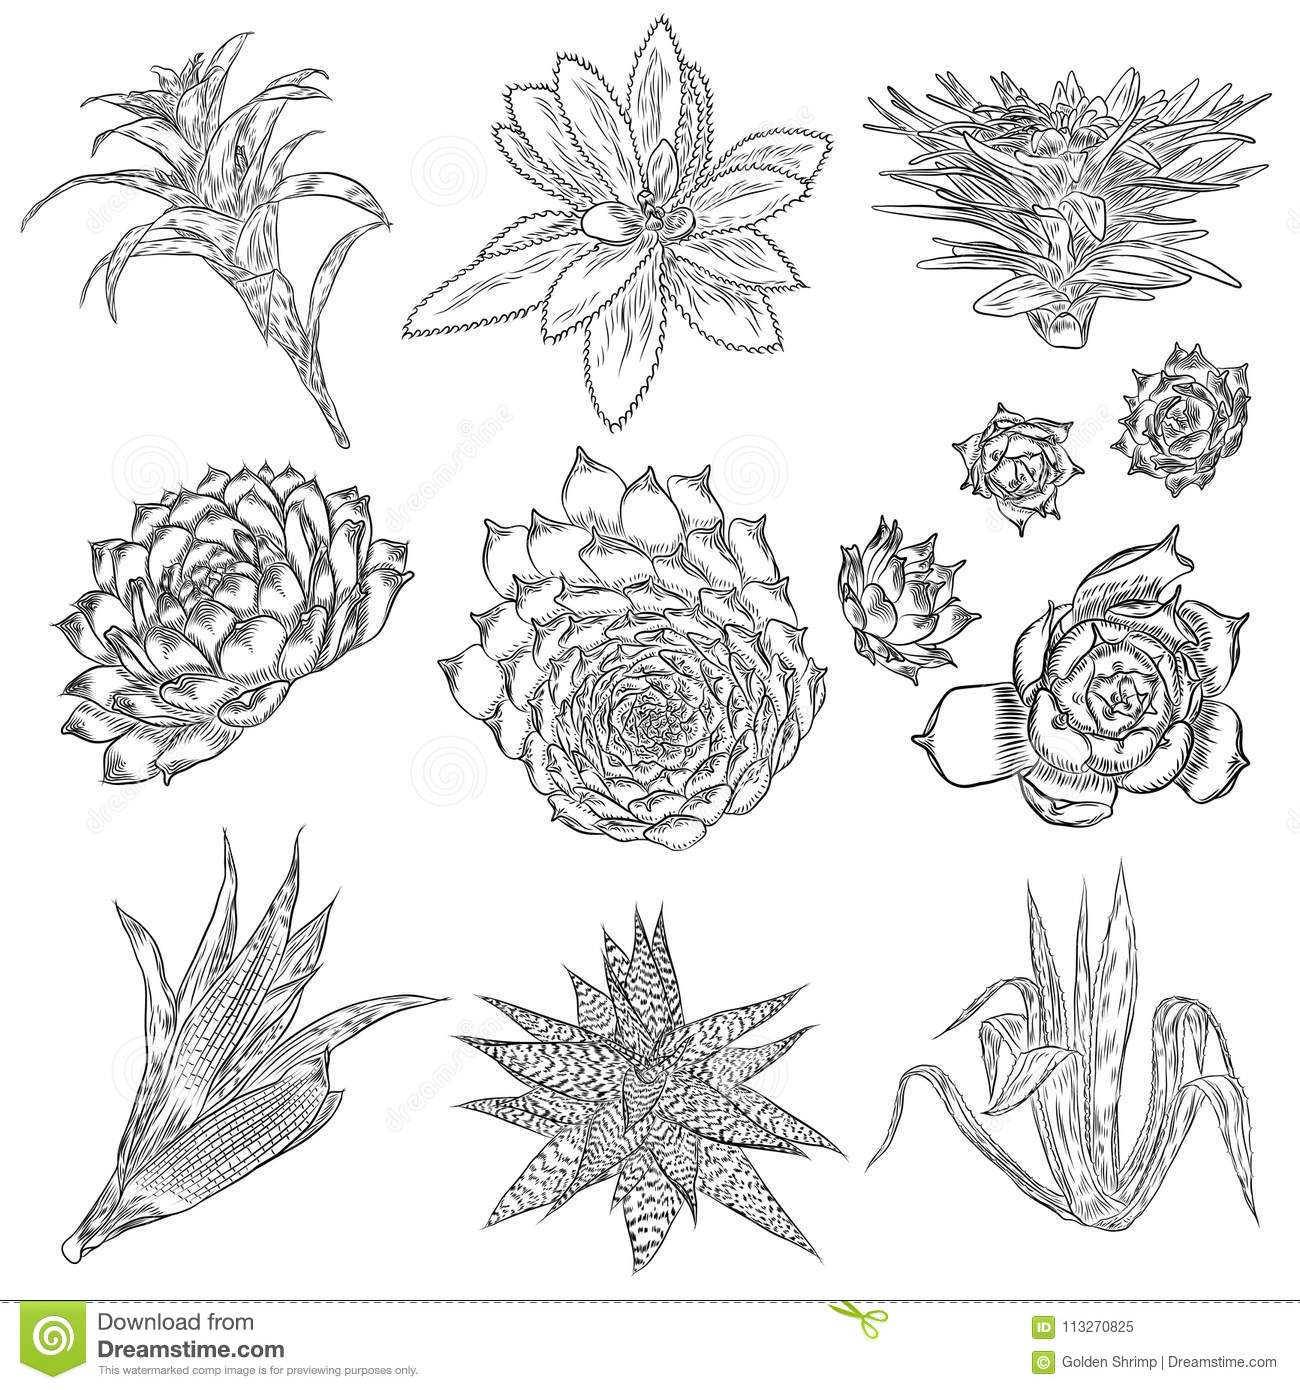 Cute Cactus Illustrations Handmade Set Hand Drawn Outline Cacti And Succulents Drawings Decorative Floral Design Elements For Stock Illustration Illustration Of Houseplant Floral 113270825